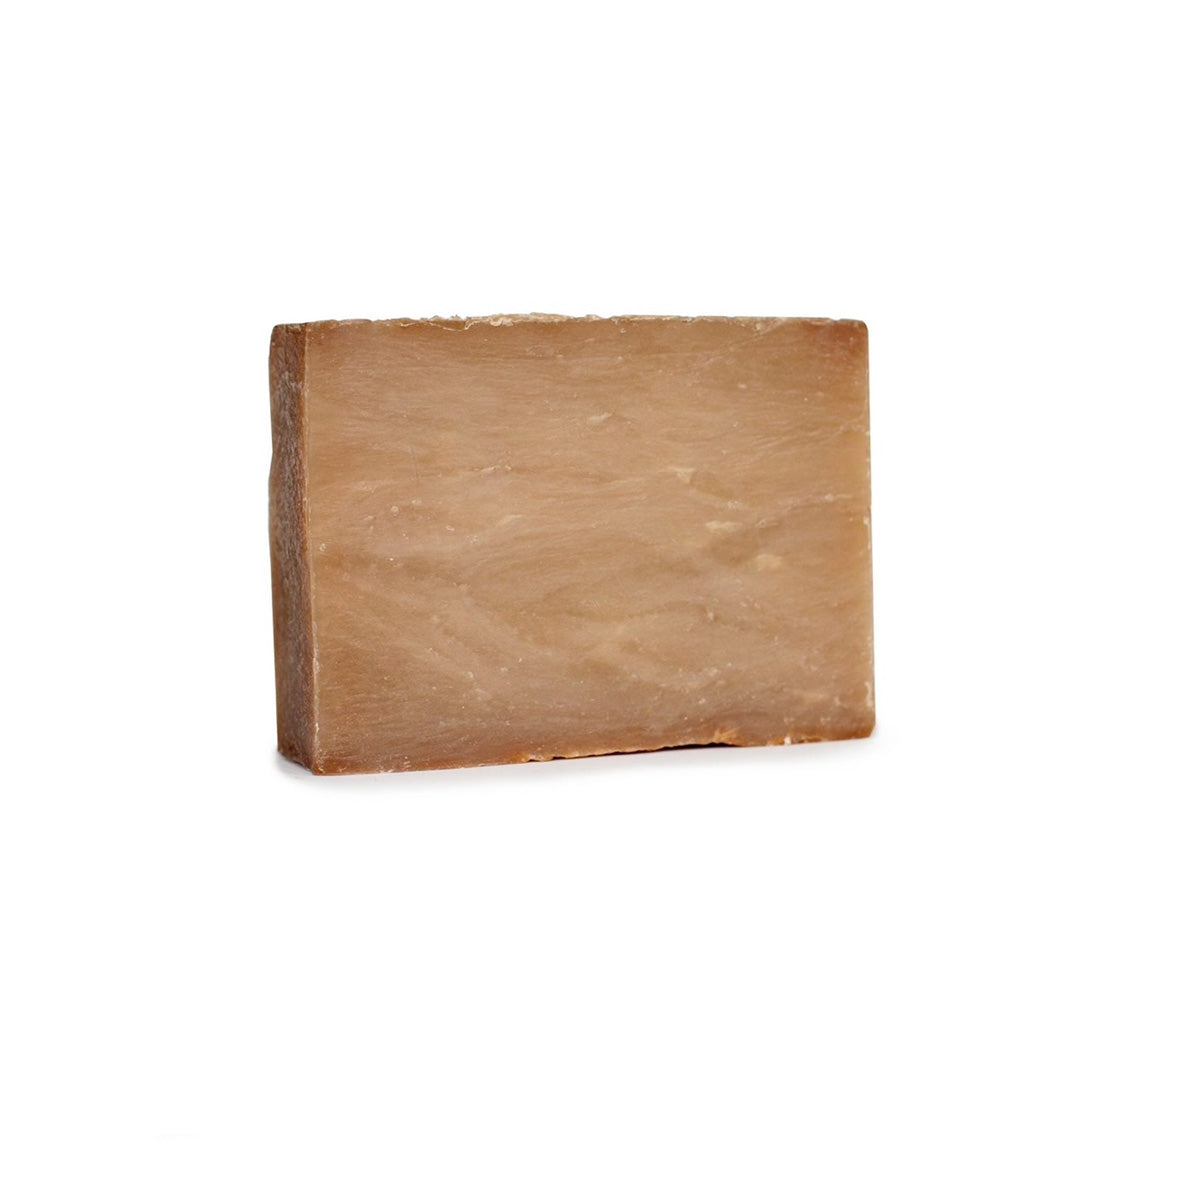 Sandalwood Soap Bar w/Cloth